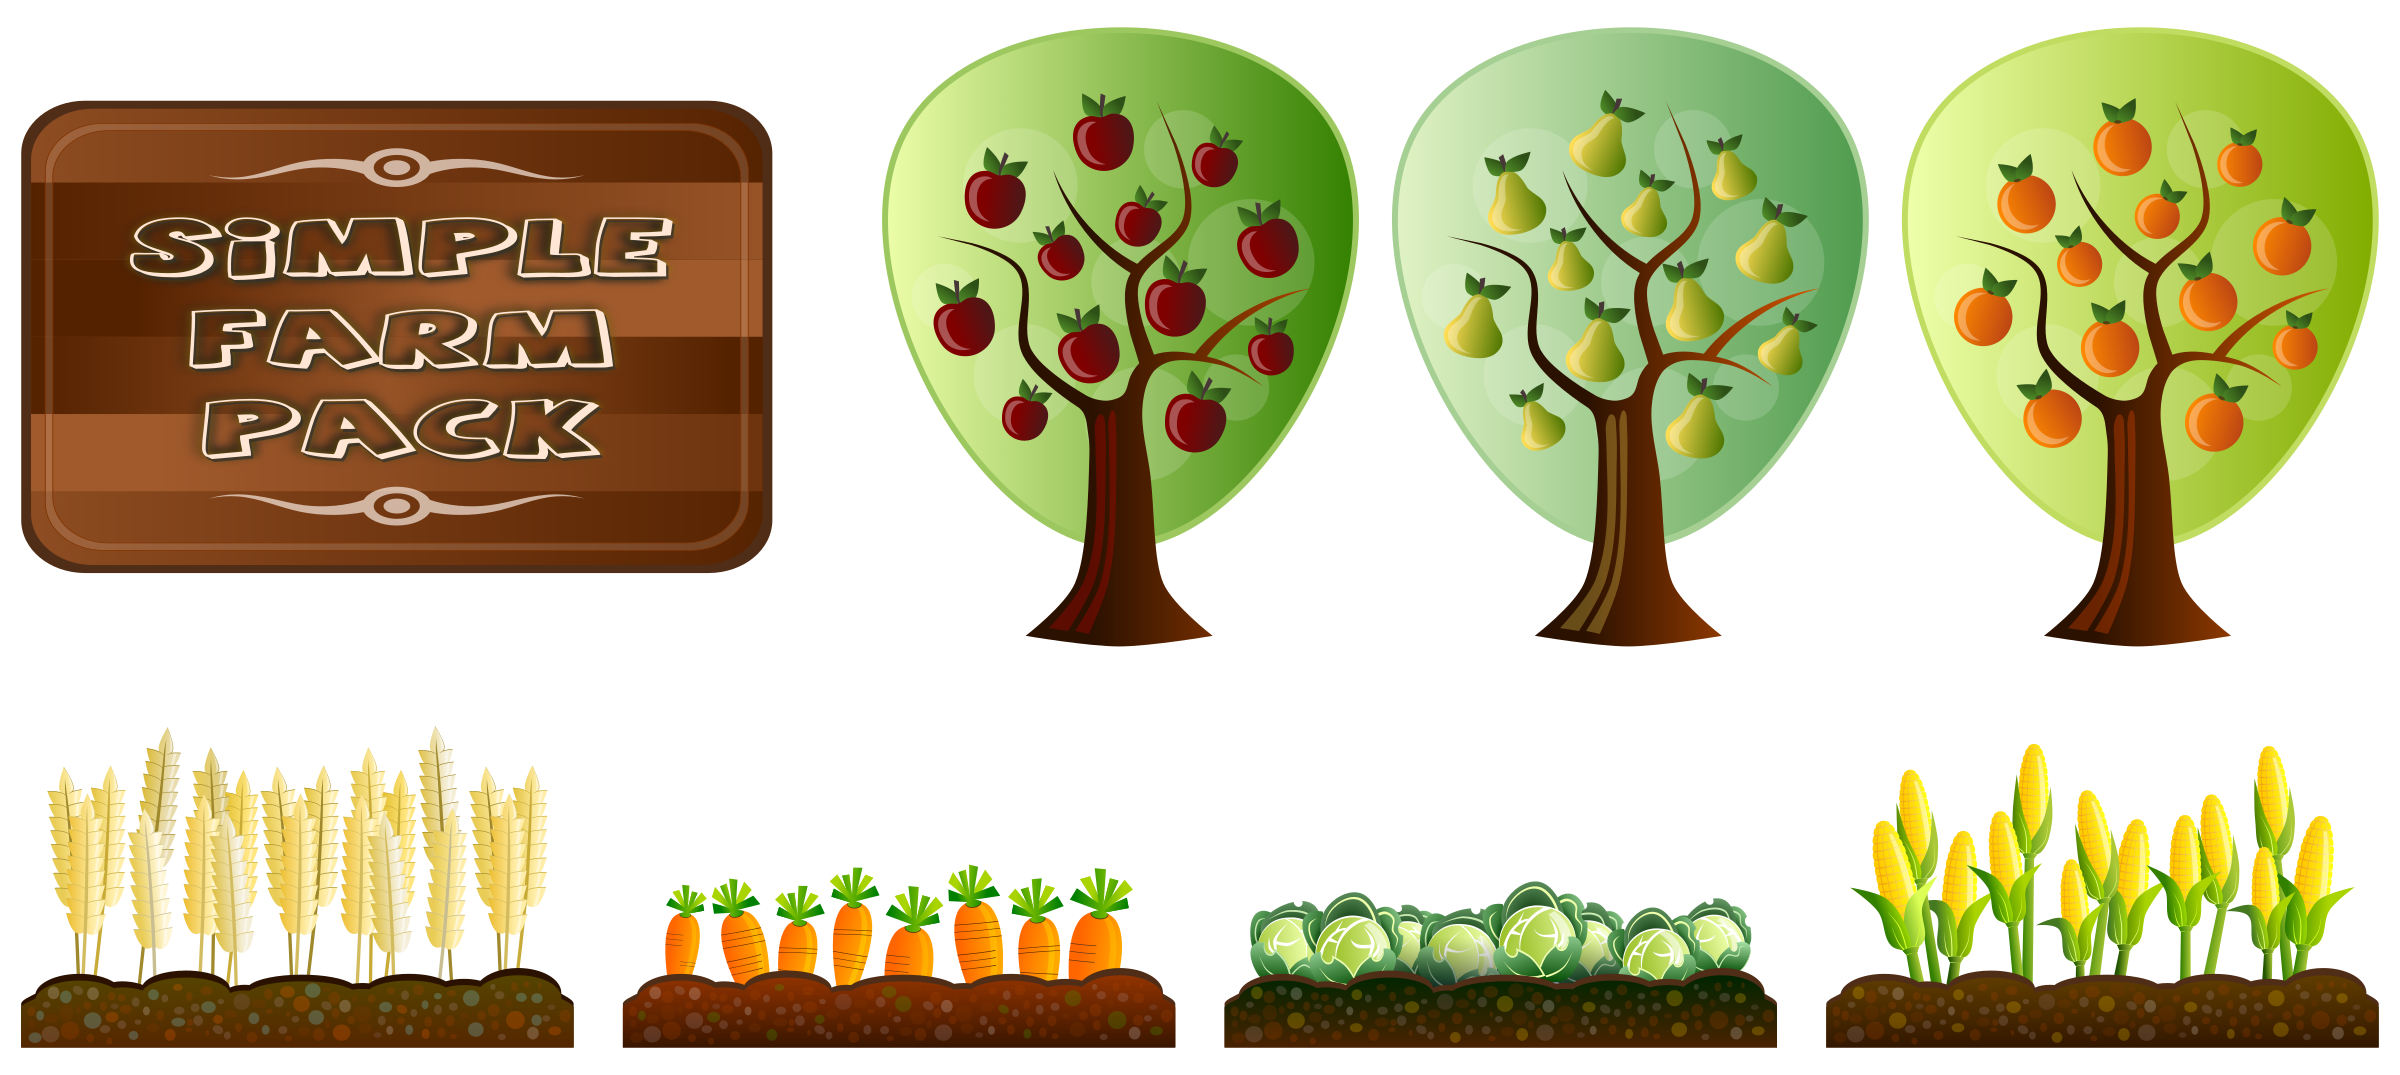 picture download Crops clipart. Simple farm big image